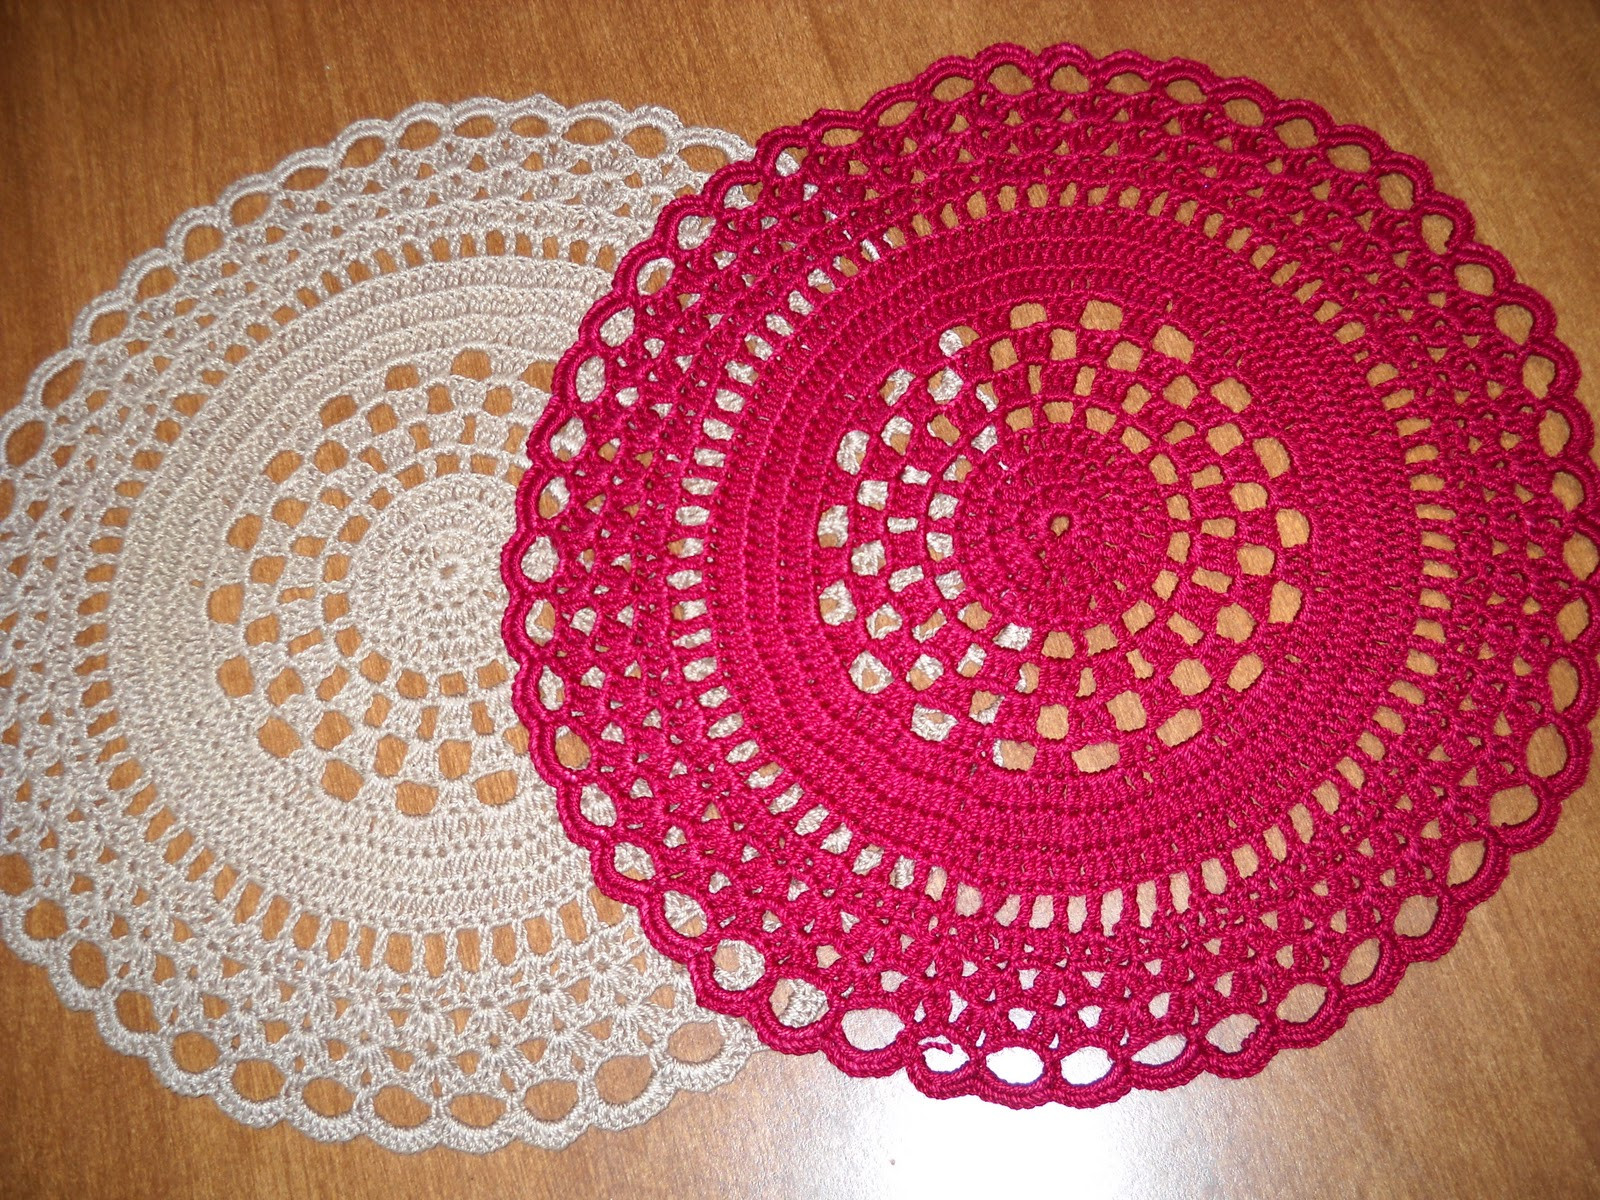 Crochet Doily Patterns Fresh Crochet Galore Birthday Doily November Doily Of the Month Of Contemporary 43 Pics Crochet Doily Patterns